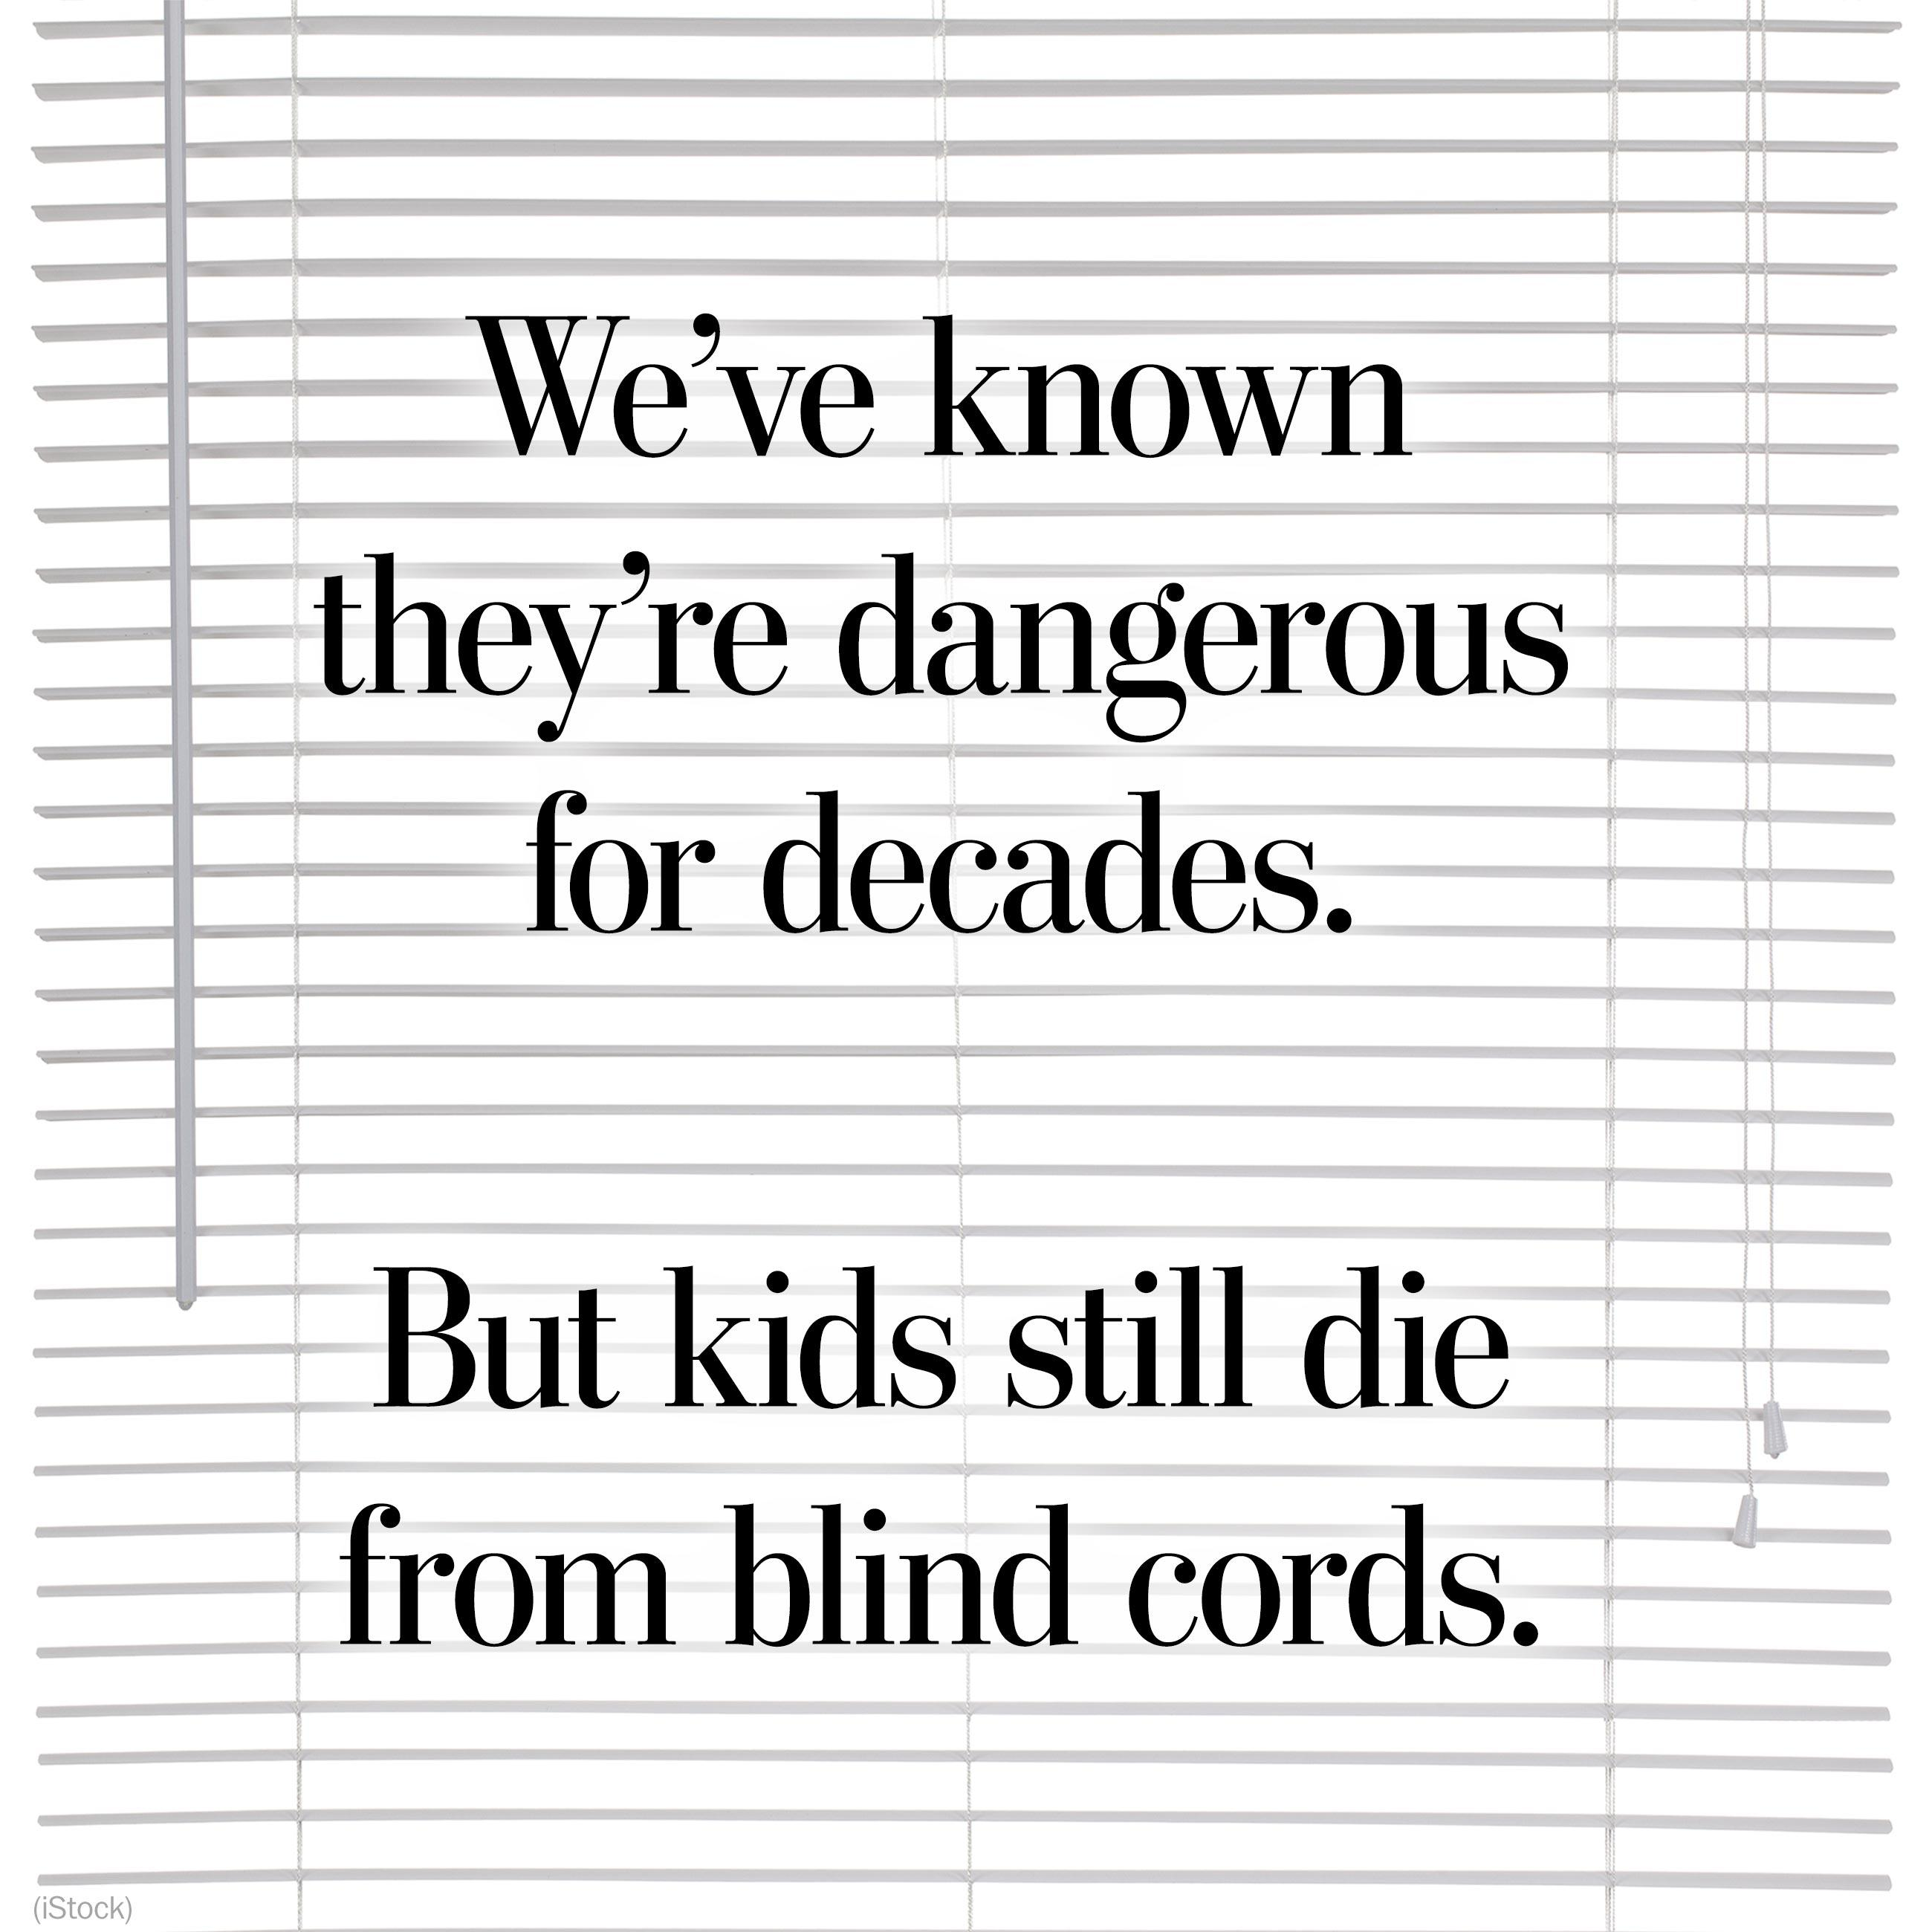 Kids are strangling on blind cords when we've known for years they're dangerous